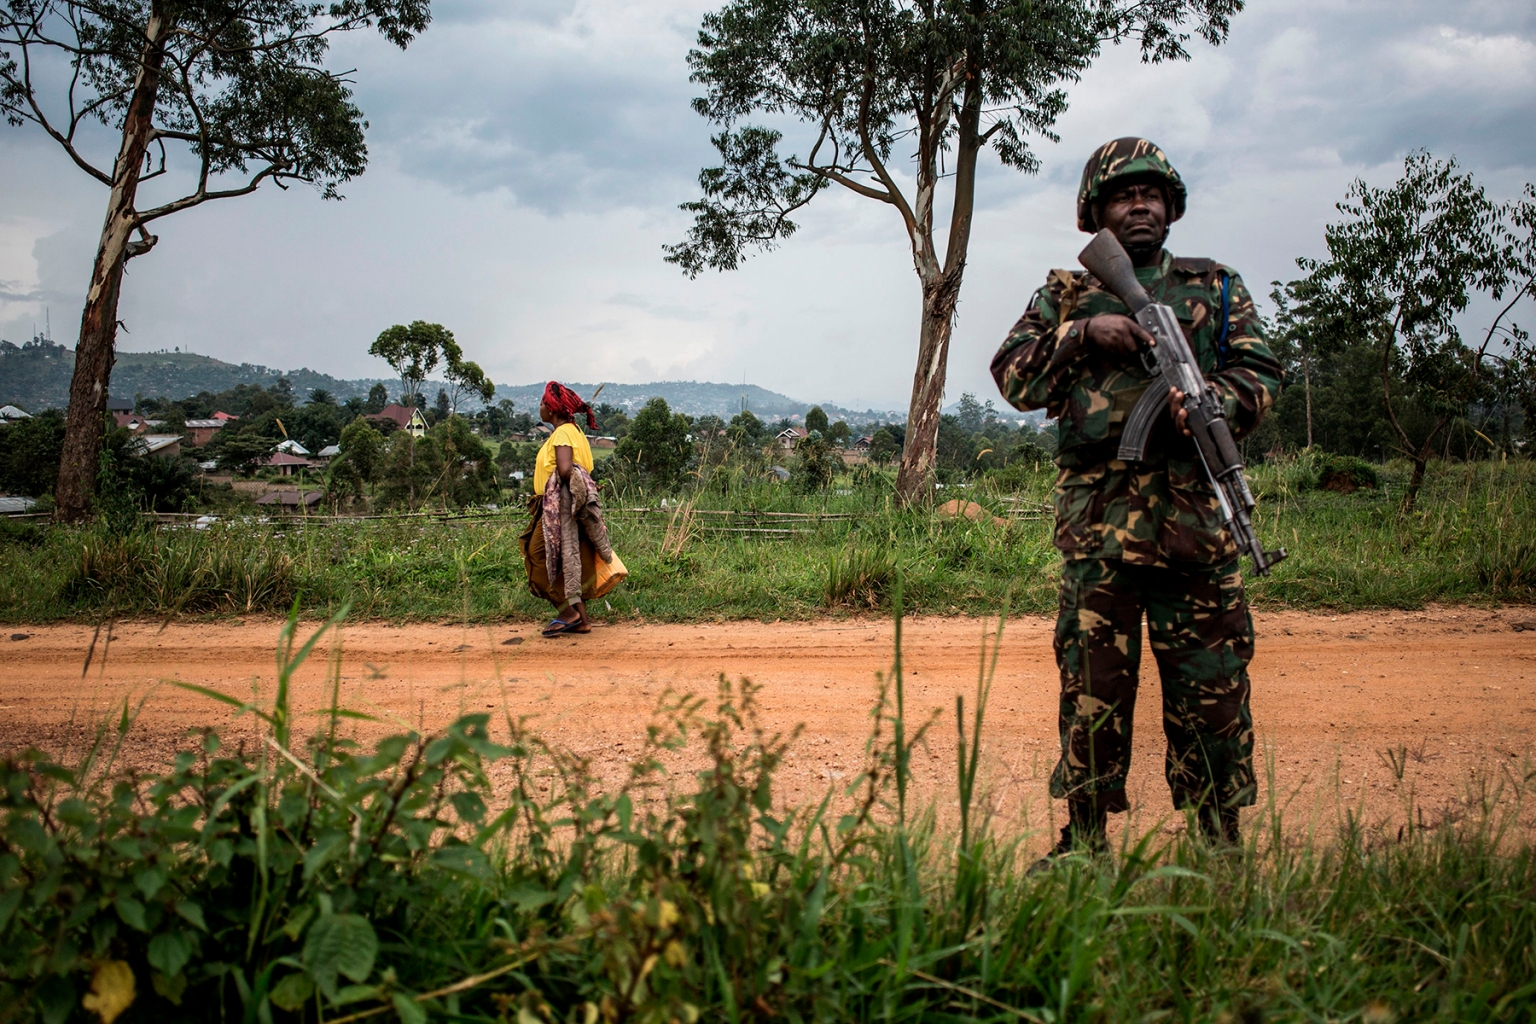 A woman walks by as a Tanzanian soldier from the United Nations Organization Stabilization Mission in the Democratic Republic of the Congo patrols against Ugandan Allied Democratic Force rebels in Beni on Nov. 13. For the past four years, the Beni area has been under seige from the an Islamist armed group that has killed hundreds of people. JOHN WESSELS/AFP/Getty Images